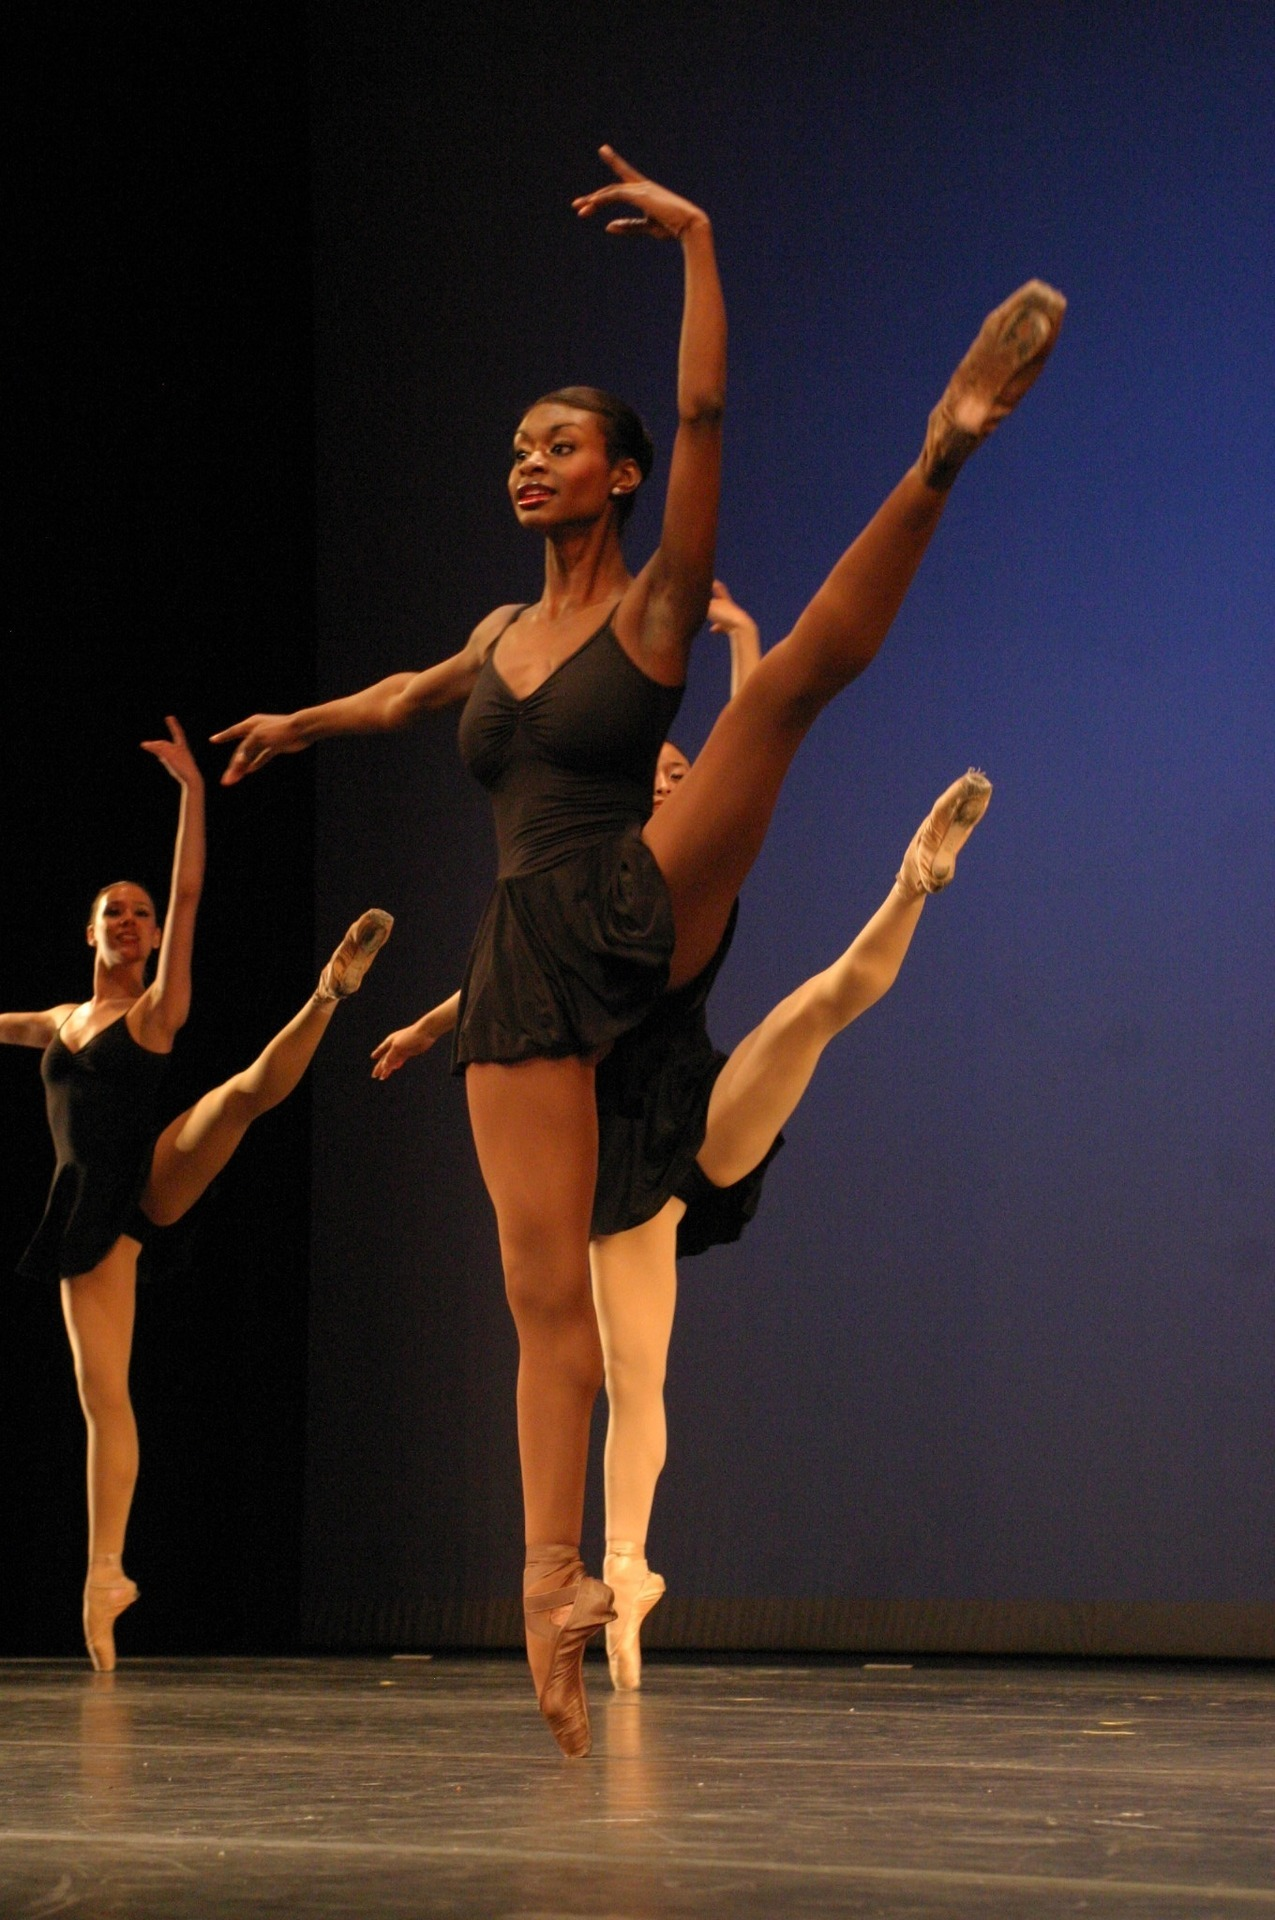 blackridinnhood:  HER BALLET SHOES ARE BROWN!